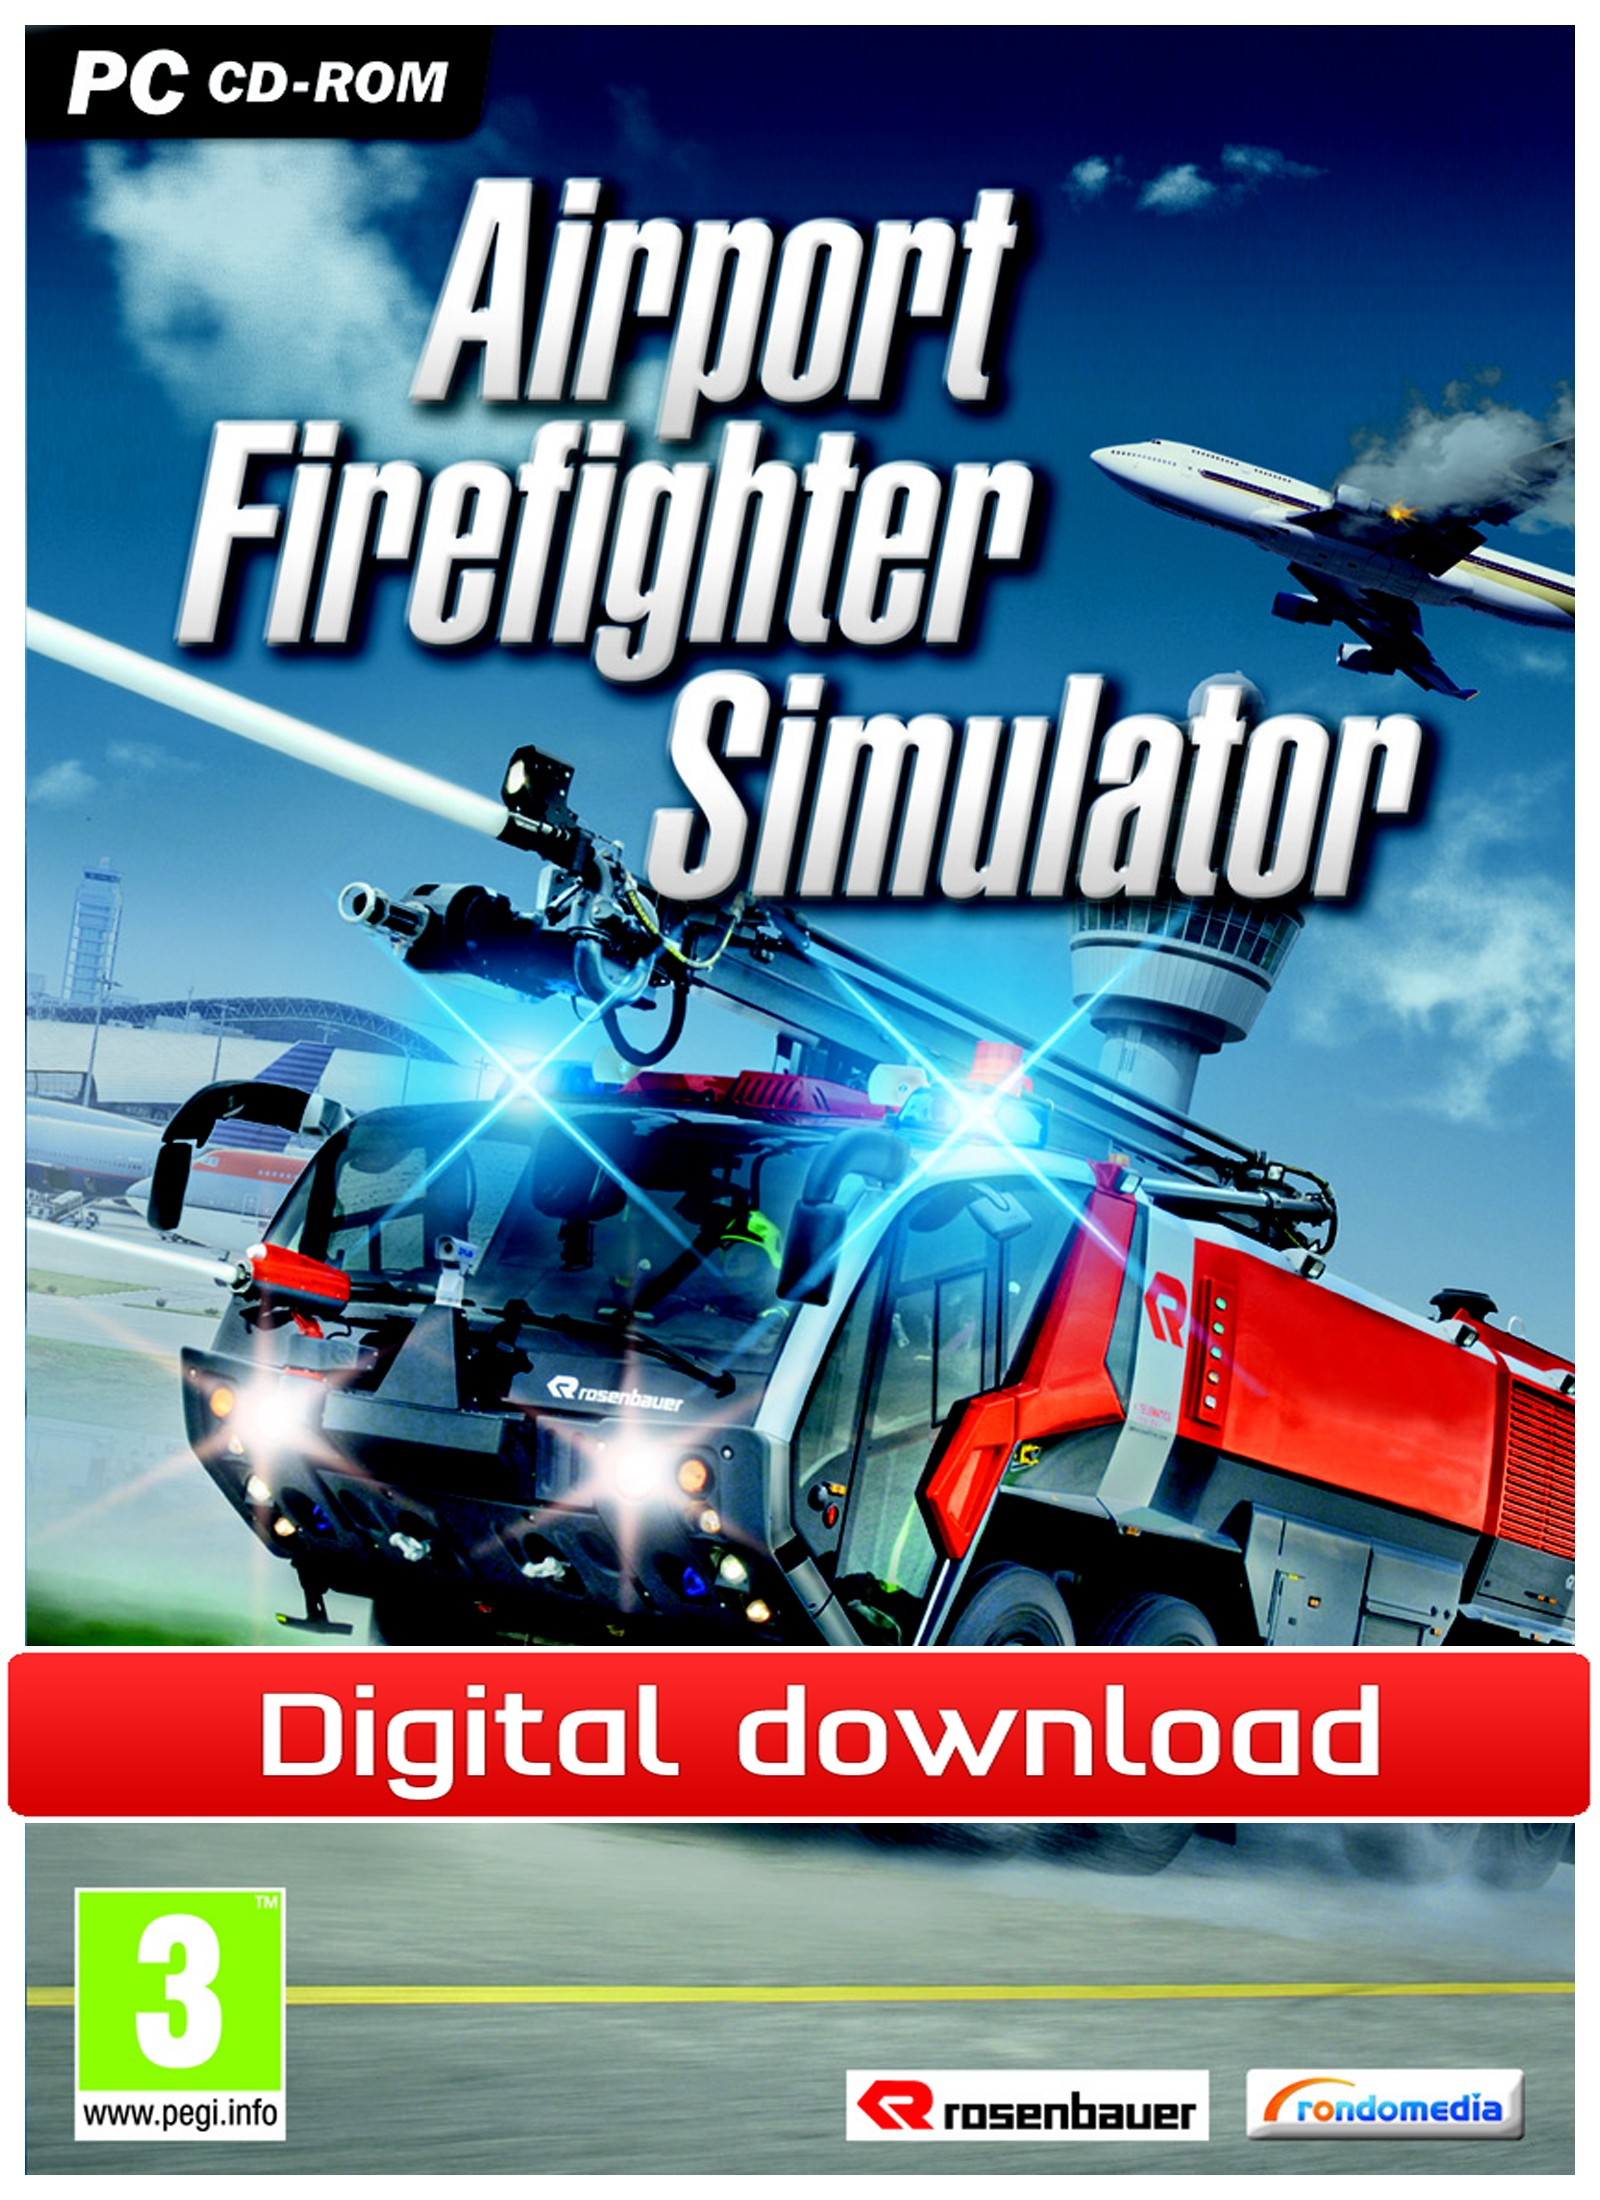 32177 : Airport Firefighter Simulator (PC nedlastning)